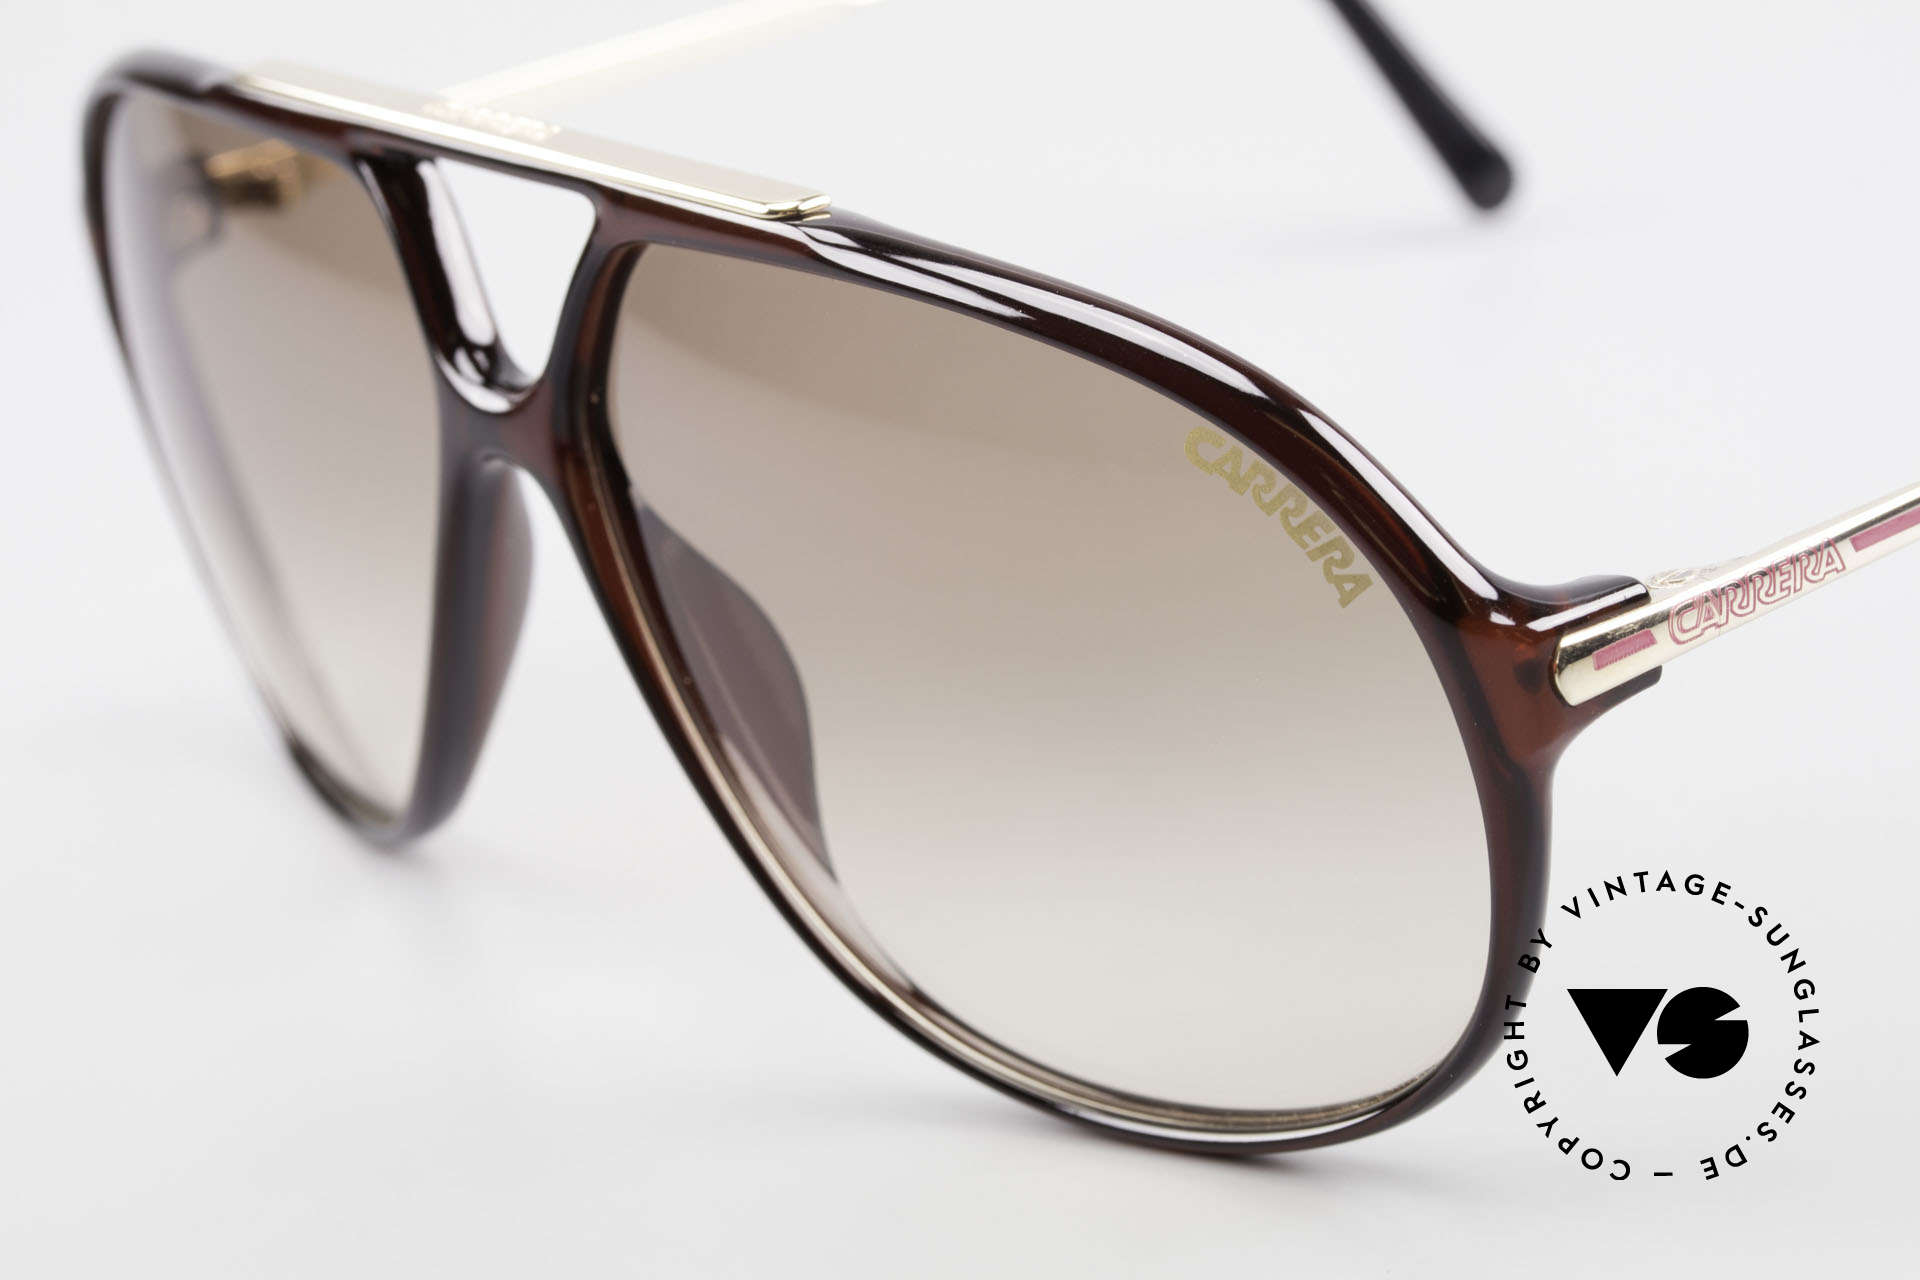 Carrera 5405 Old 90's Aviator Sunglasses, brilliant combination of elegance and functionality, Made for Men